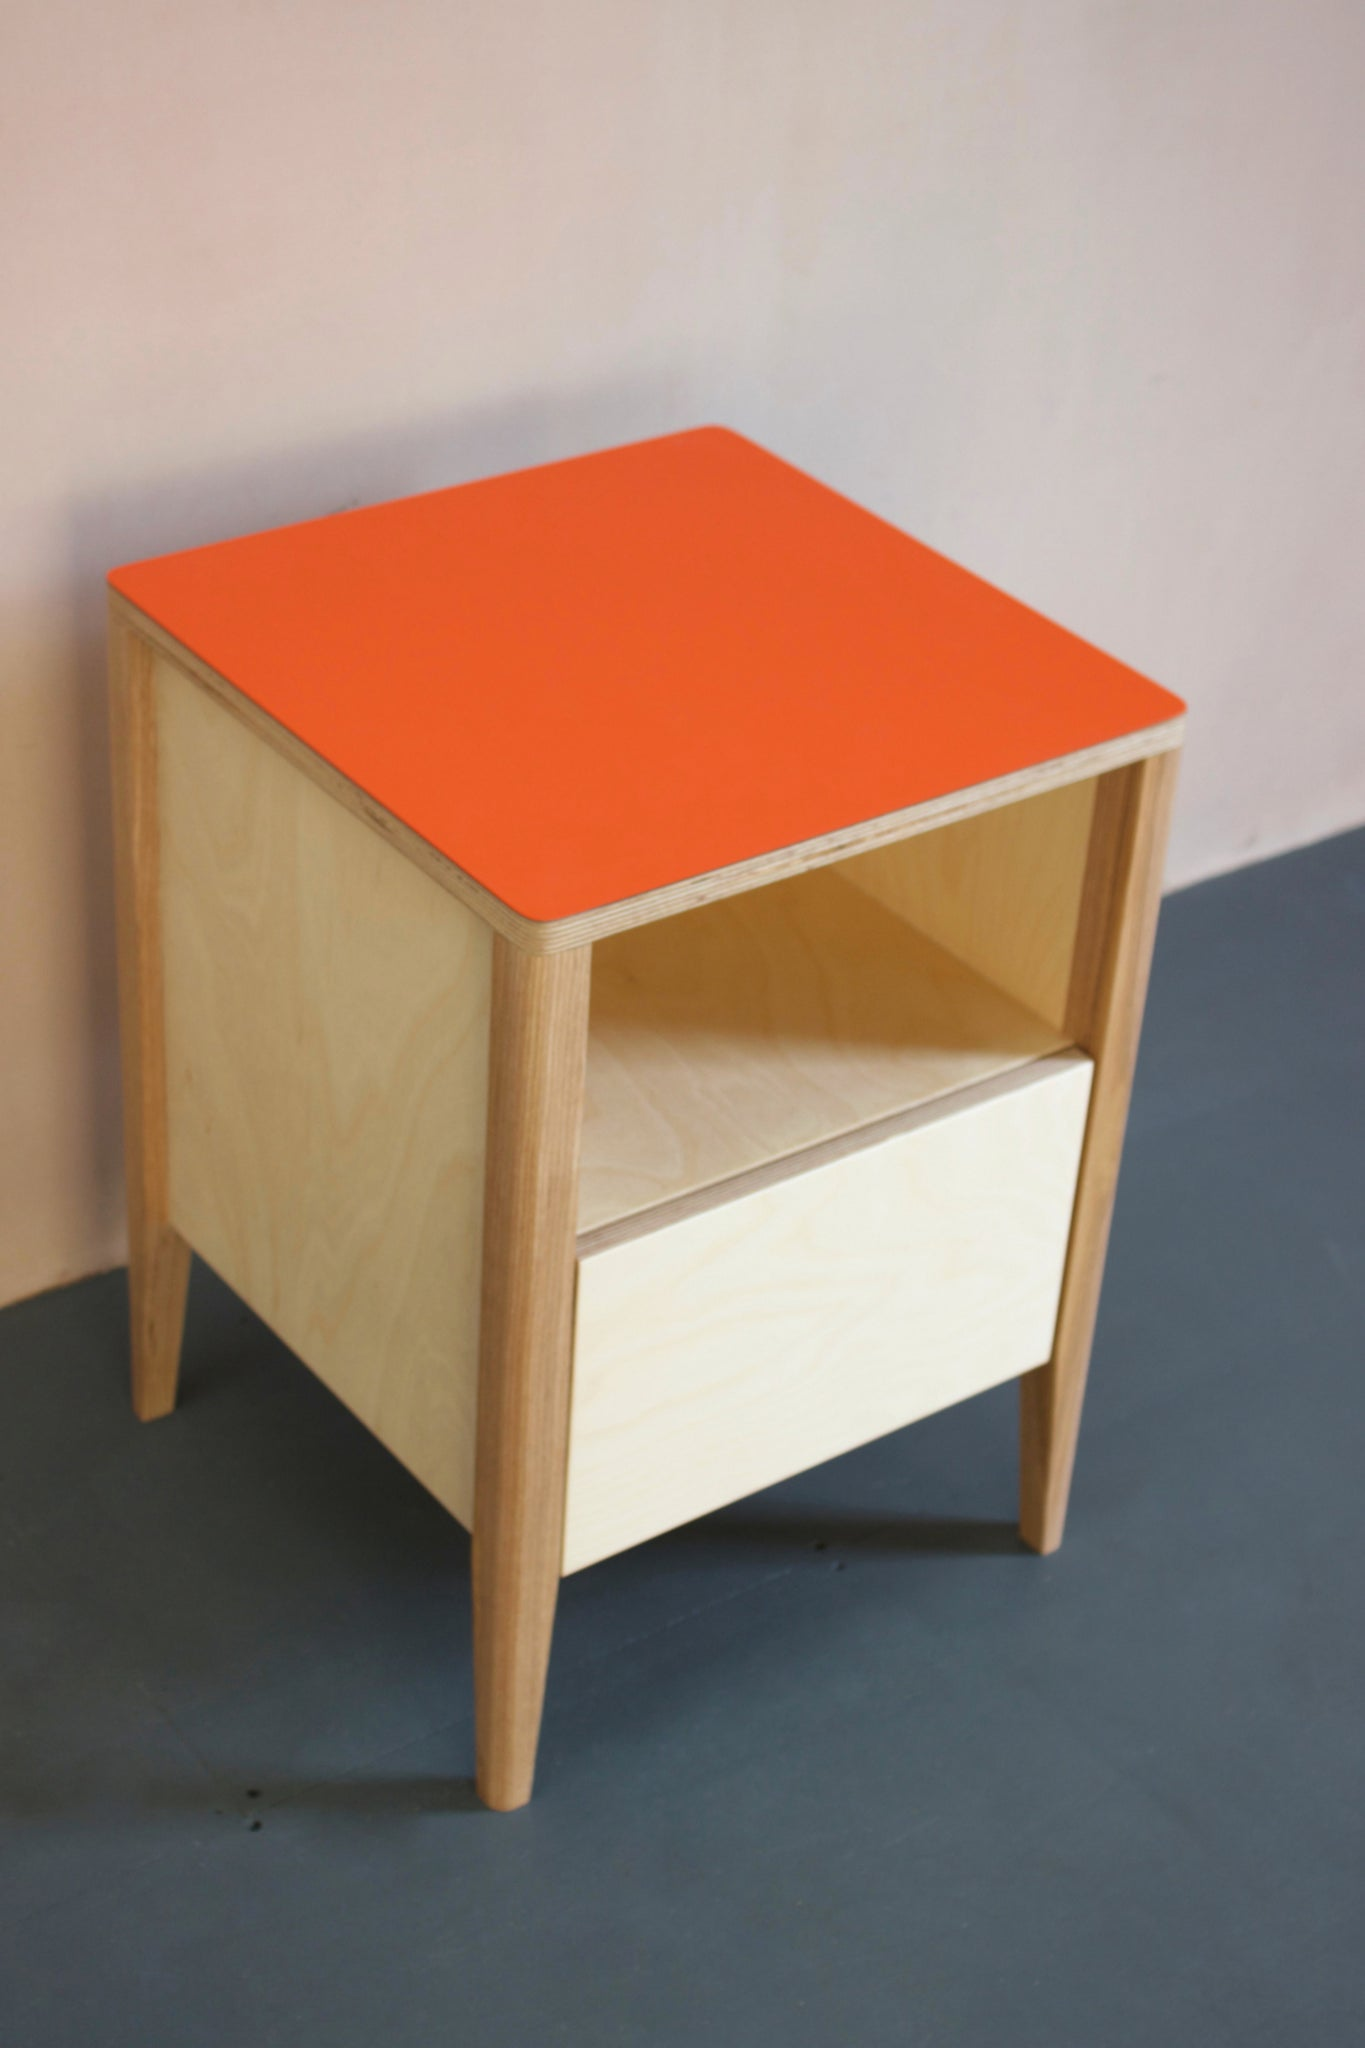 Handmade bedside table- perfect for a modern home. It features Forbo linoleum plywood  top with solid ash legs. Made by Jon Grant London in Leyton, East London.